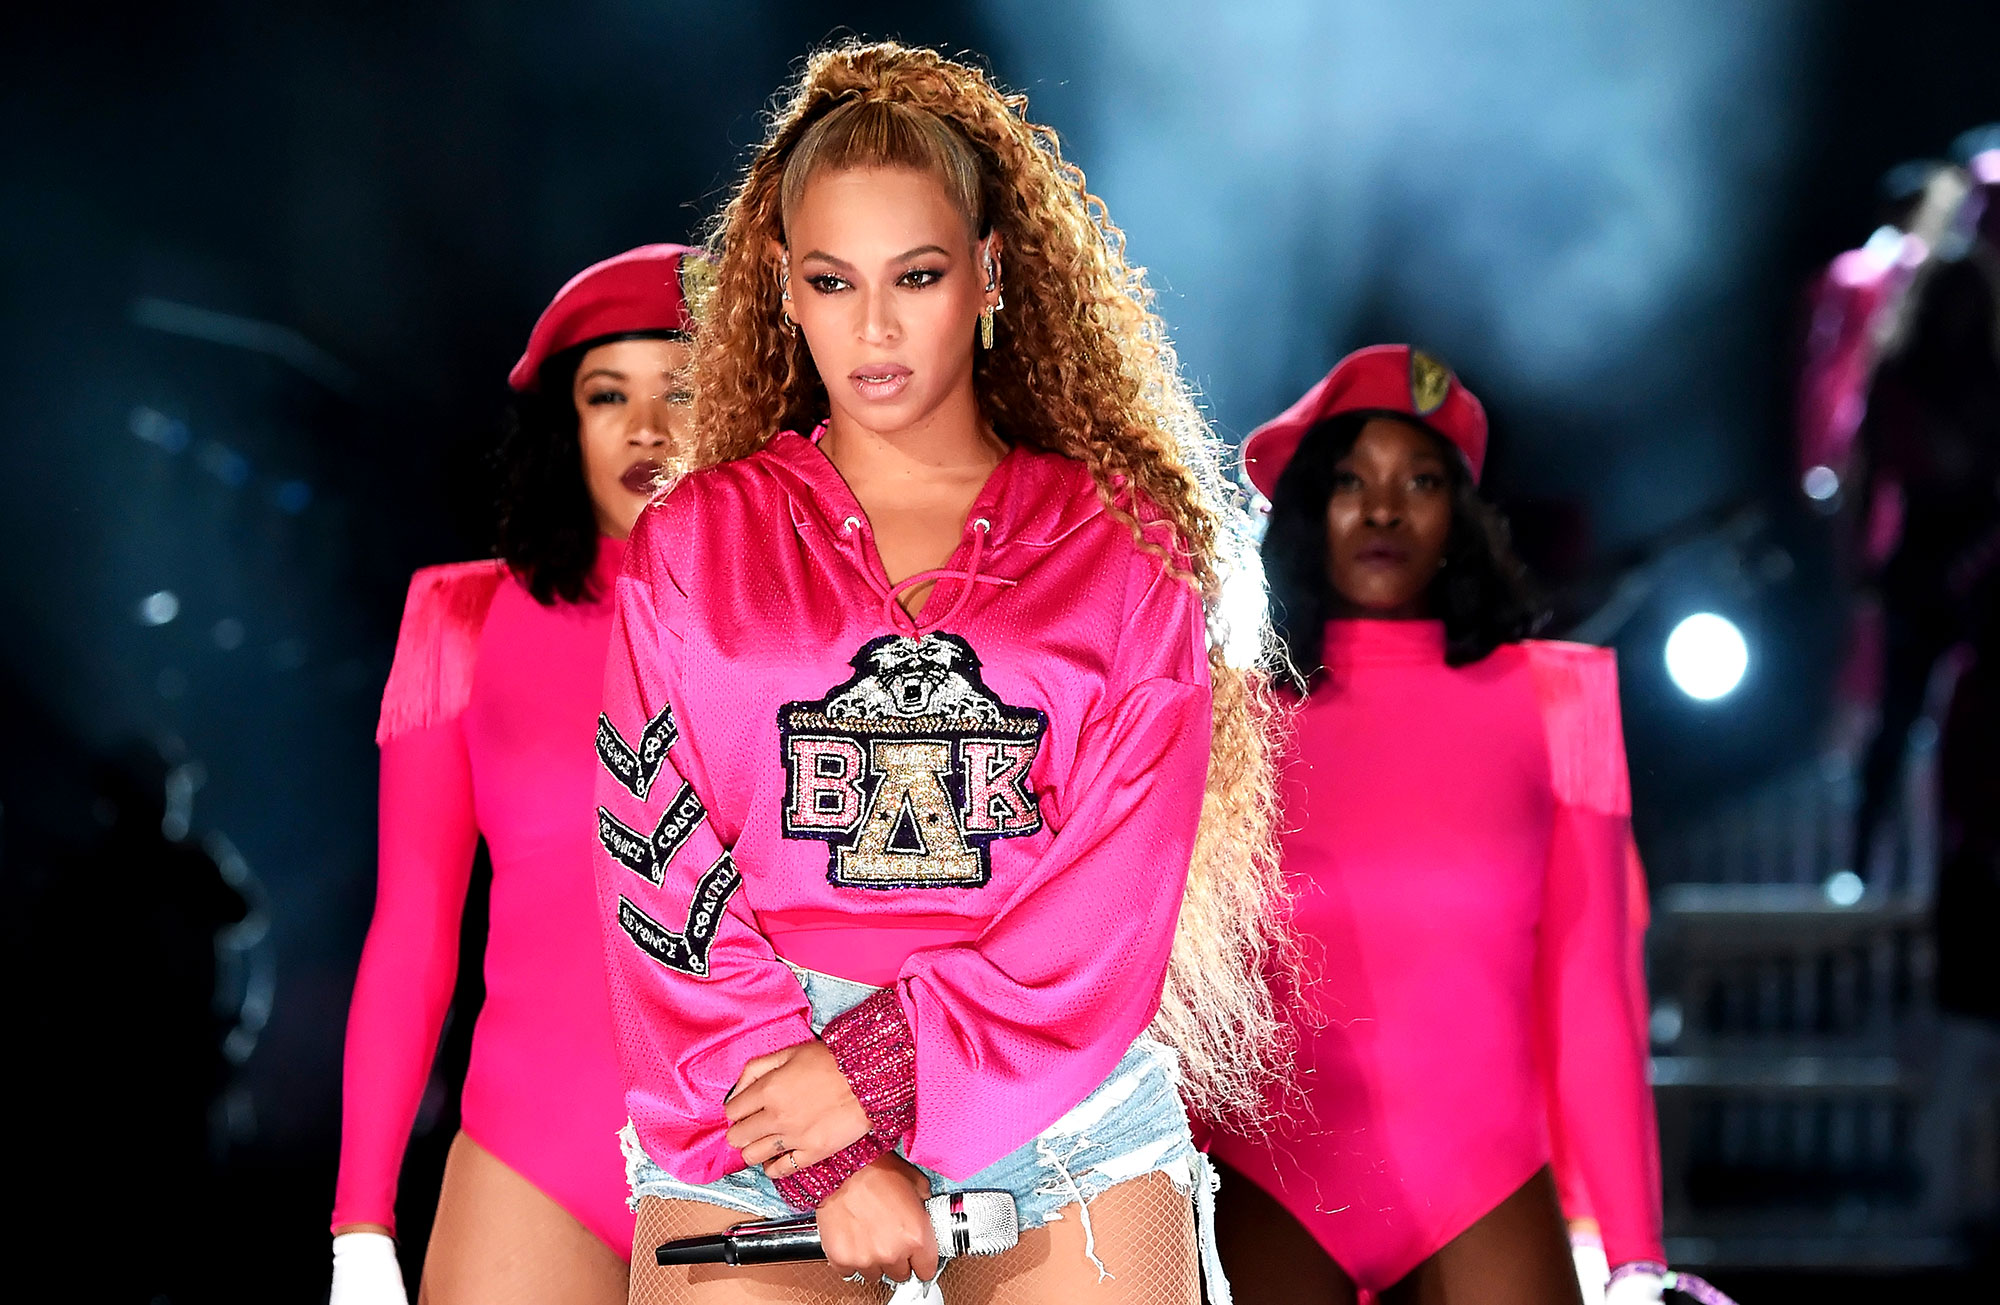 5 Spring Beauty Tips From Beyonce¹s Makeup Artist Sir John - Beyonce Knowles performs onstage during the 2018 Coachella Valley Music And Arts Festival at the Empire Polo Field on April 21, 2018 in Indio, California.